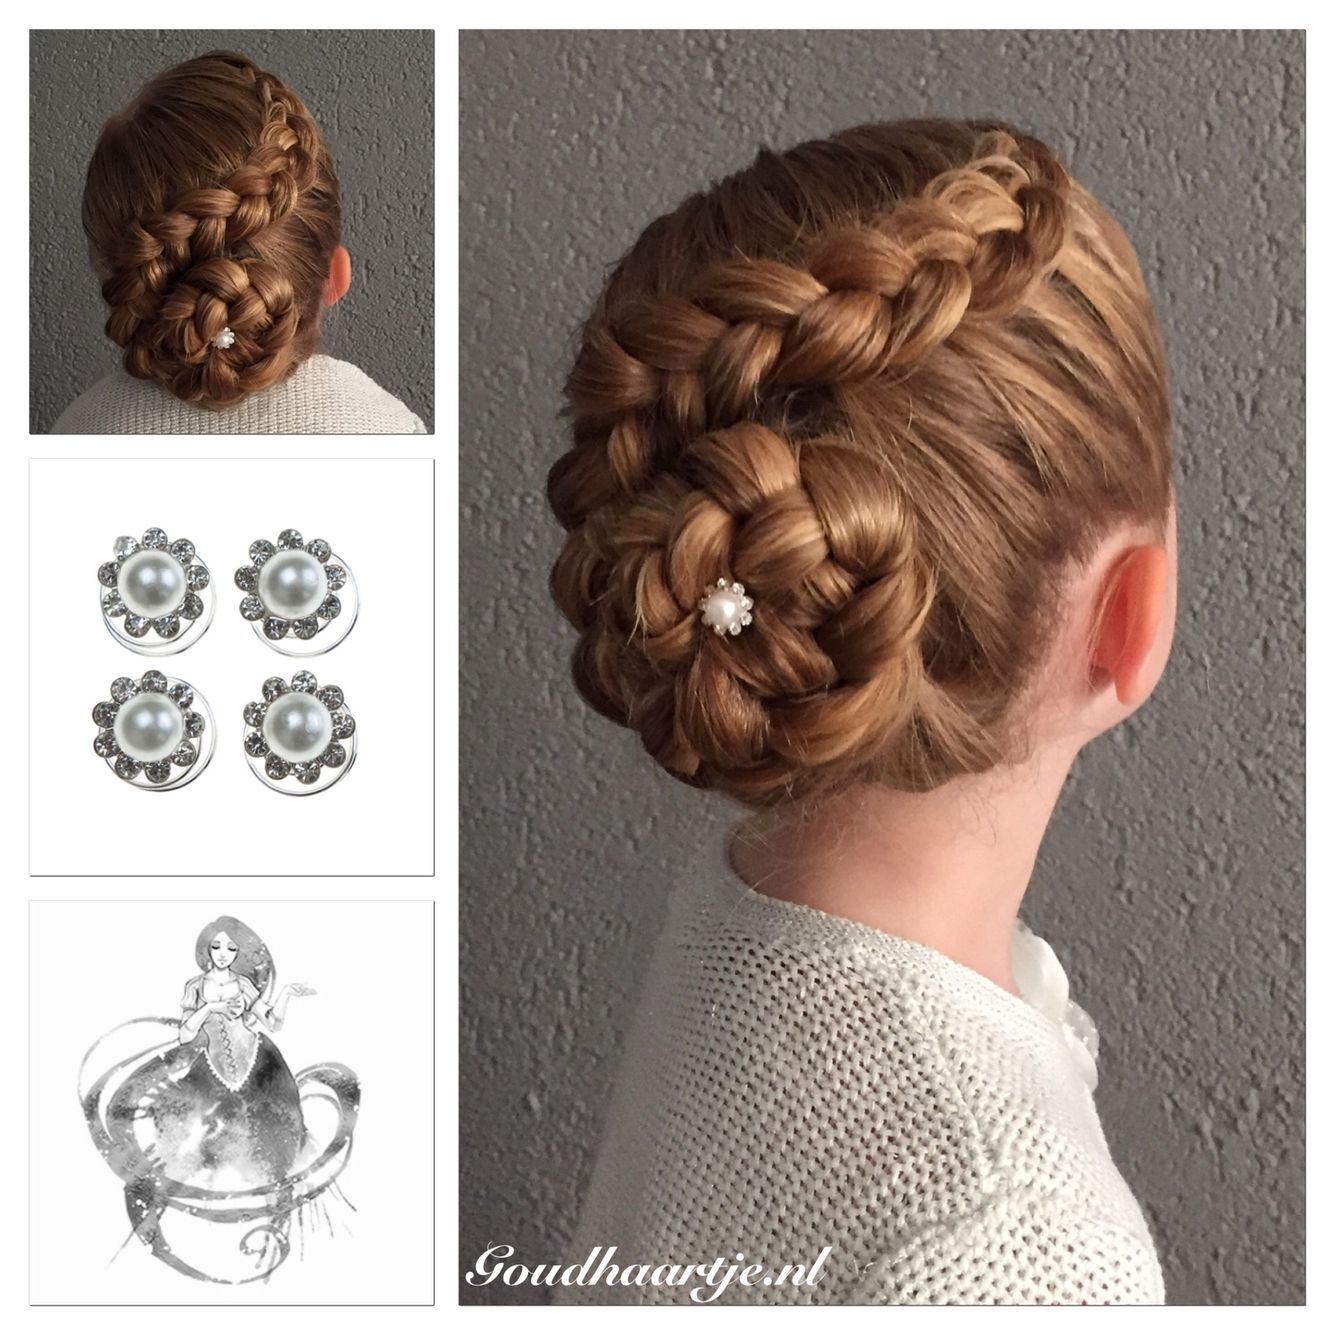 Dutch braided updo with a pretty curlie from goudhaartje